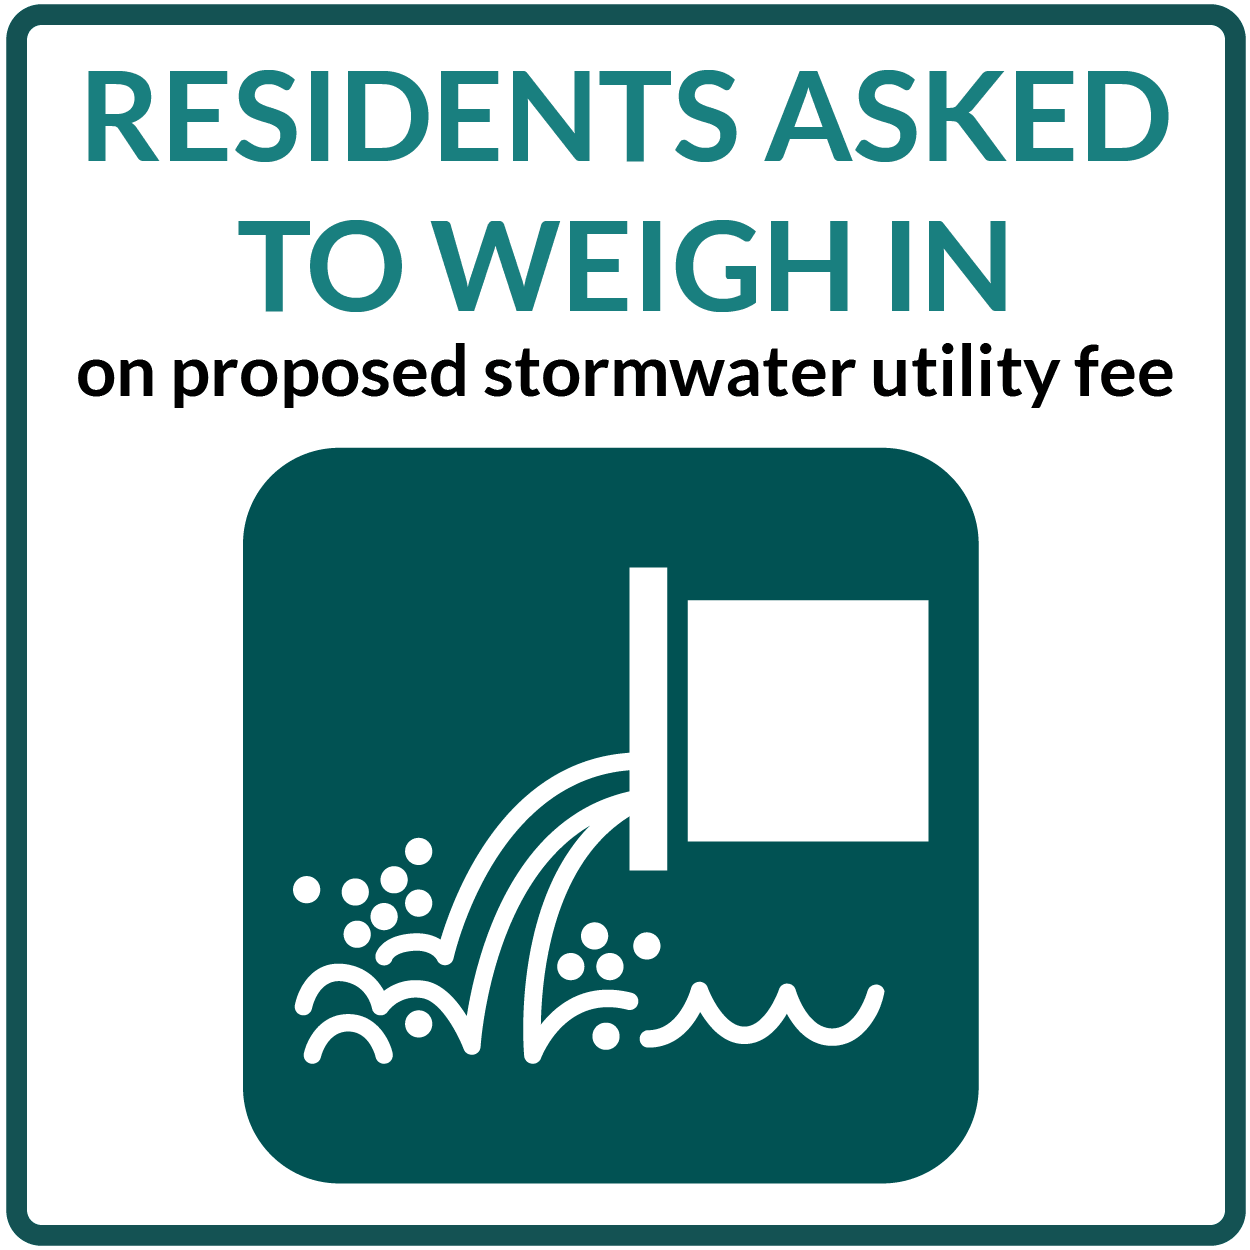 Residents asked to weigh in on proposed stormwater utility fee